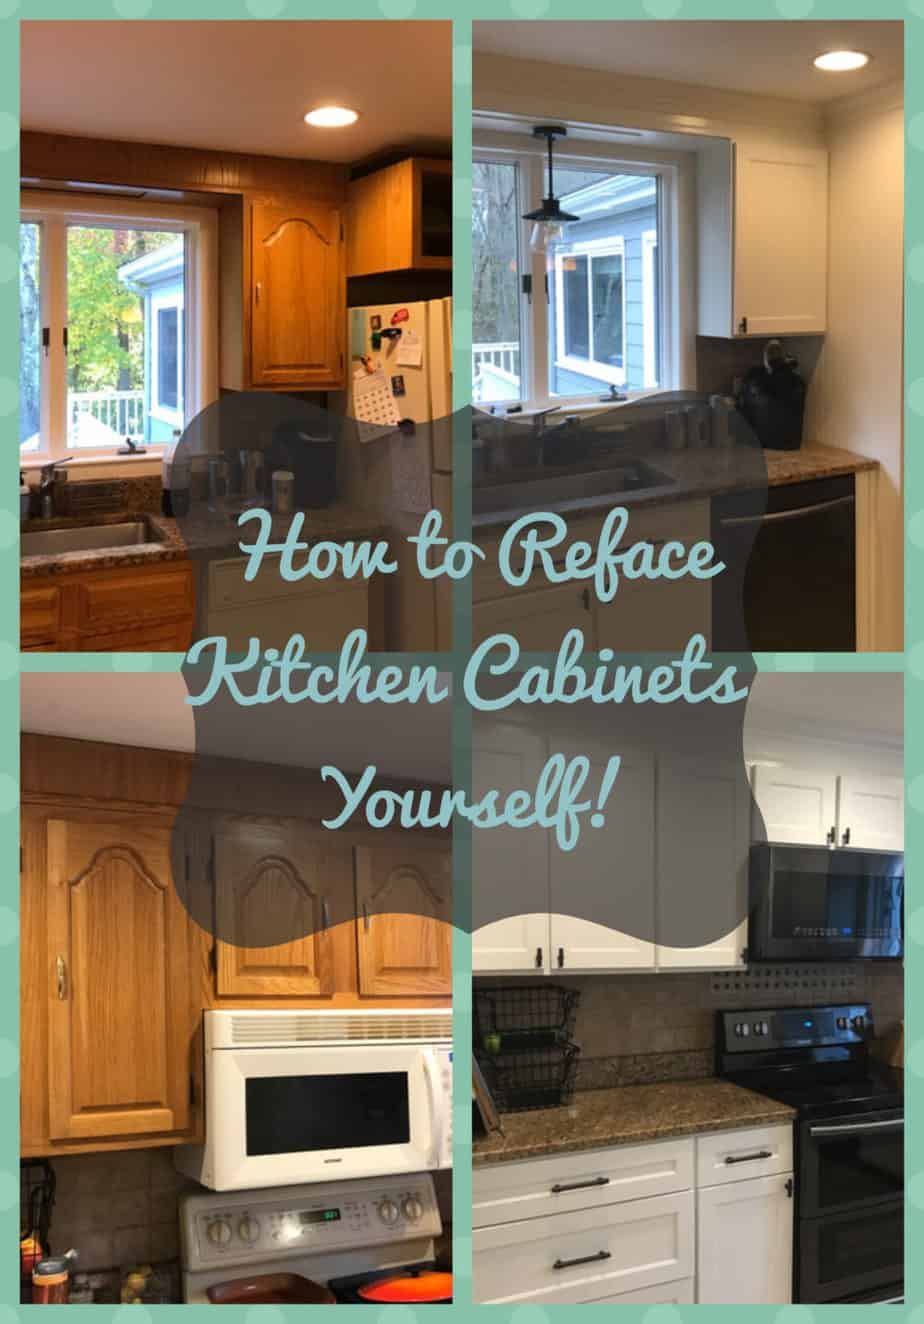 Diy Kitchen Cabinet Refacing The Easy Way To Transform Your Cabinets